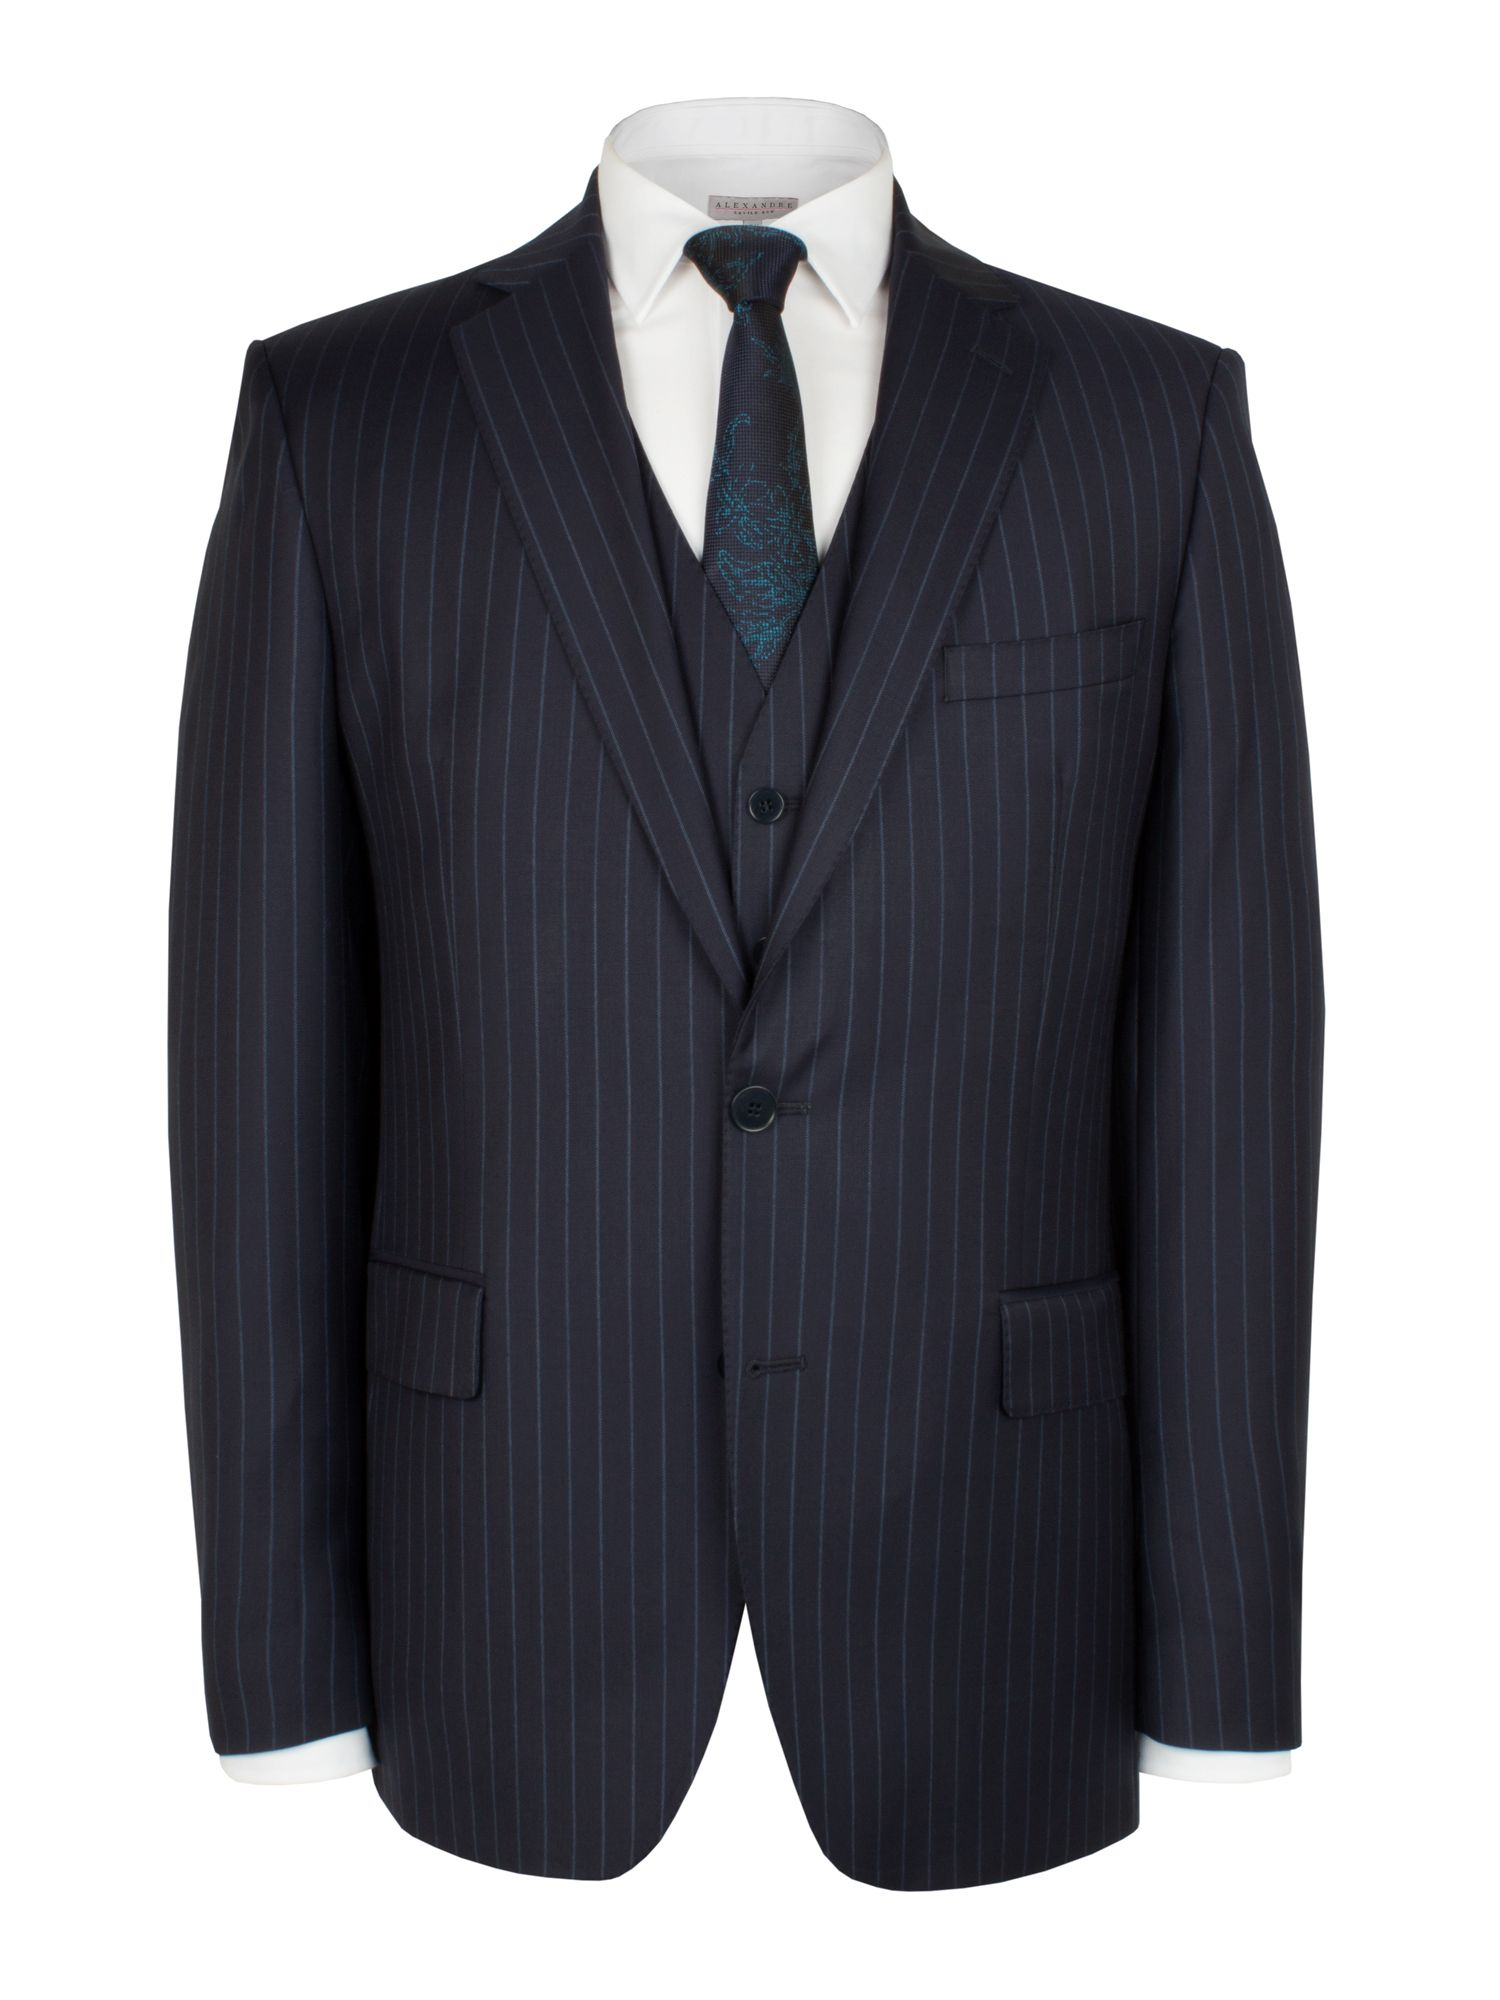 Navy blue stripe jacket